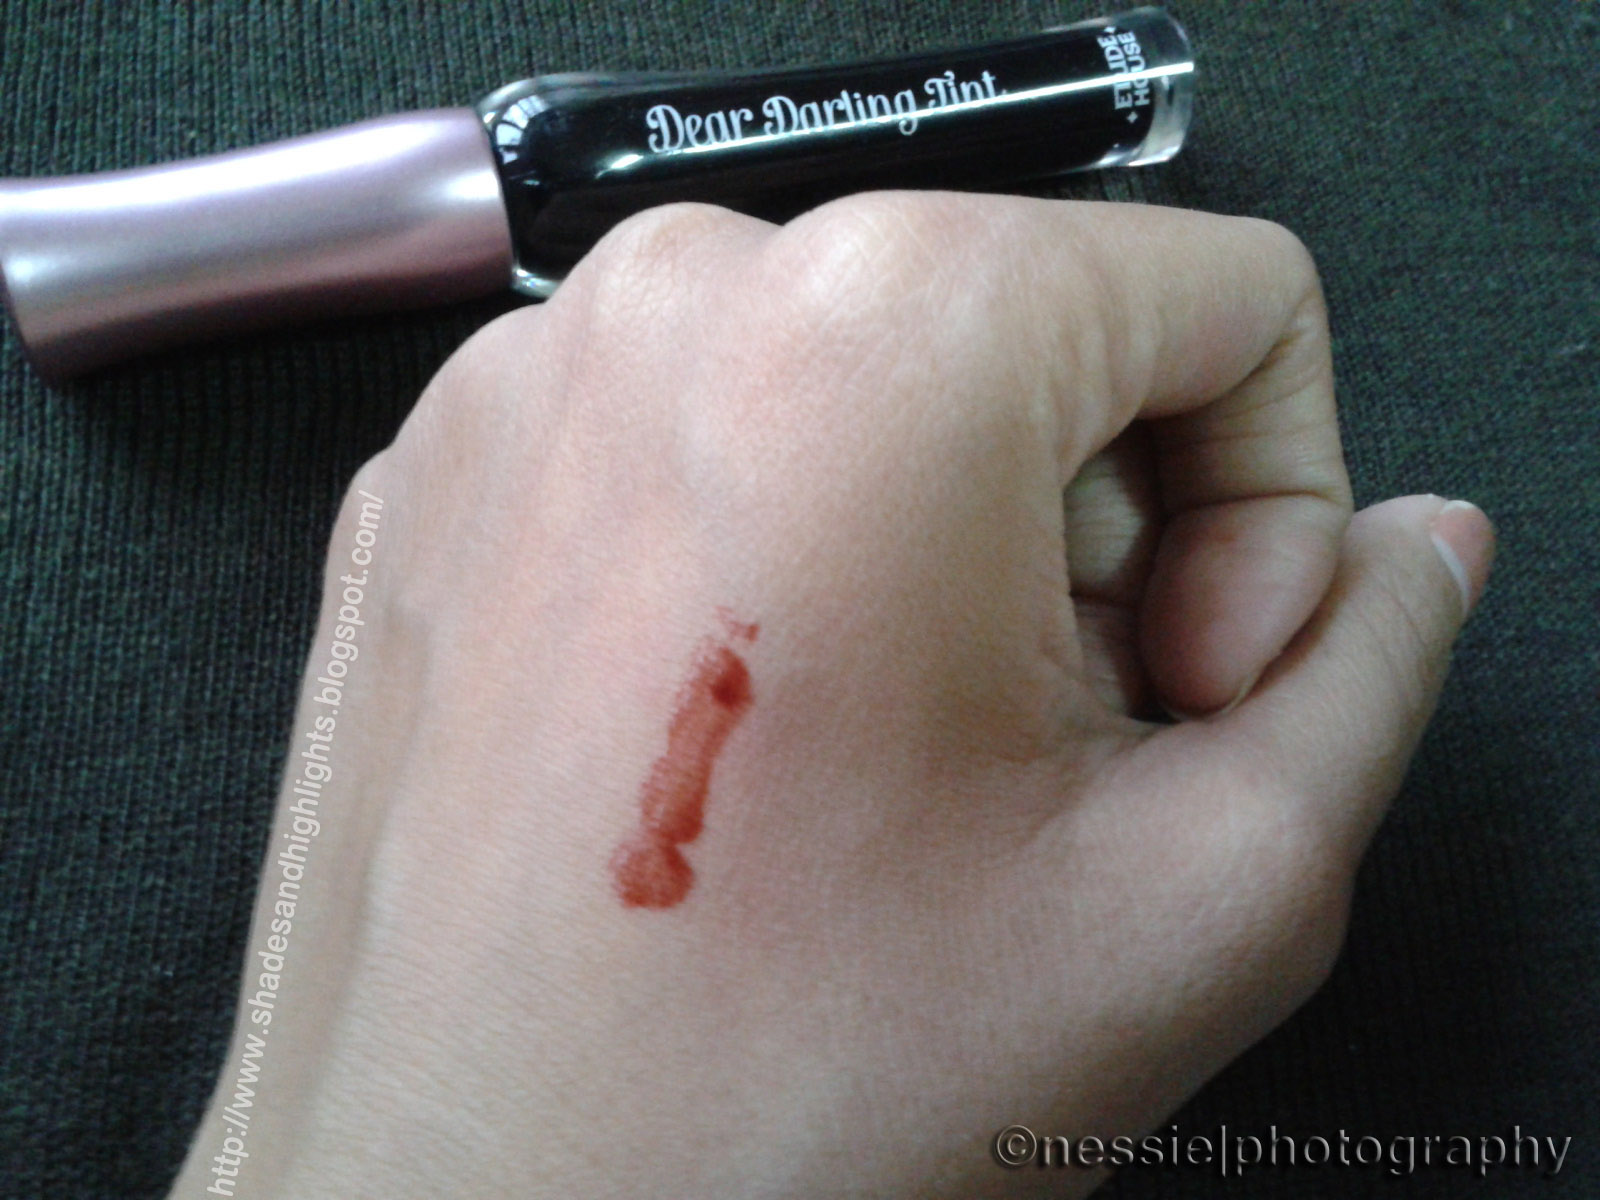 Etude House Dear Darling Tint in Vampire Red Swatch